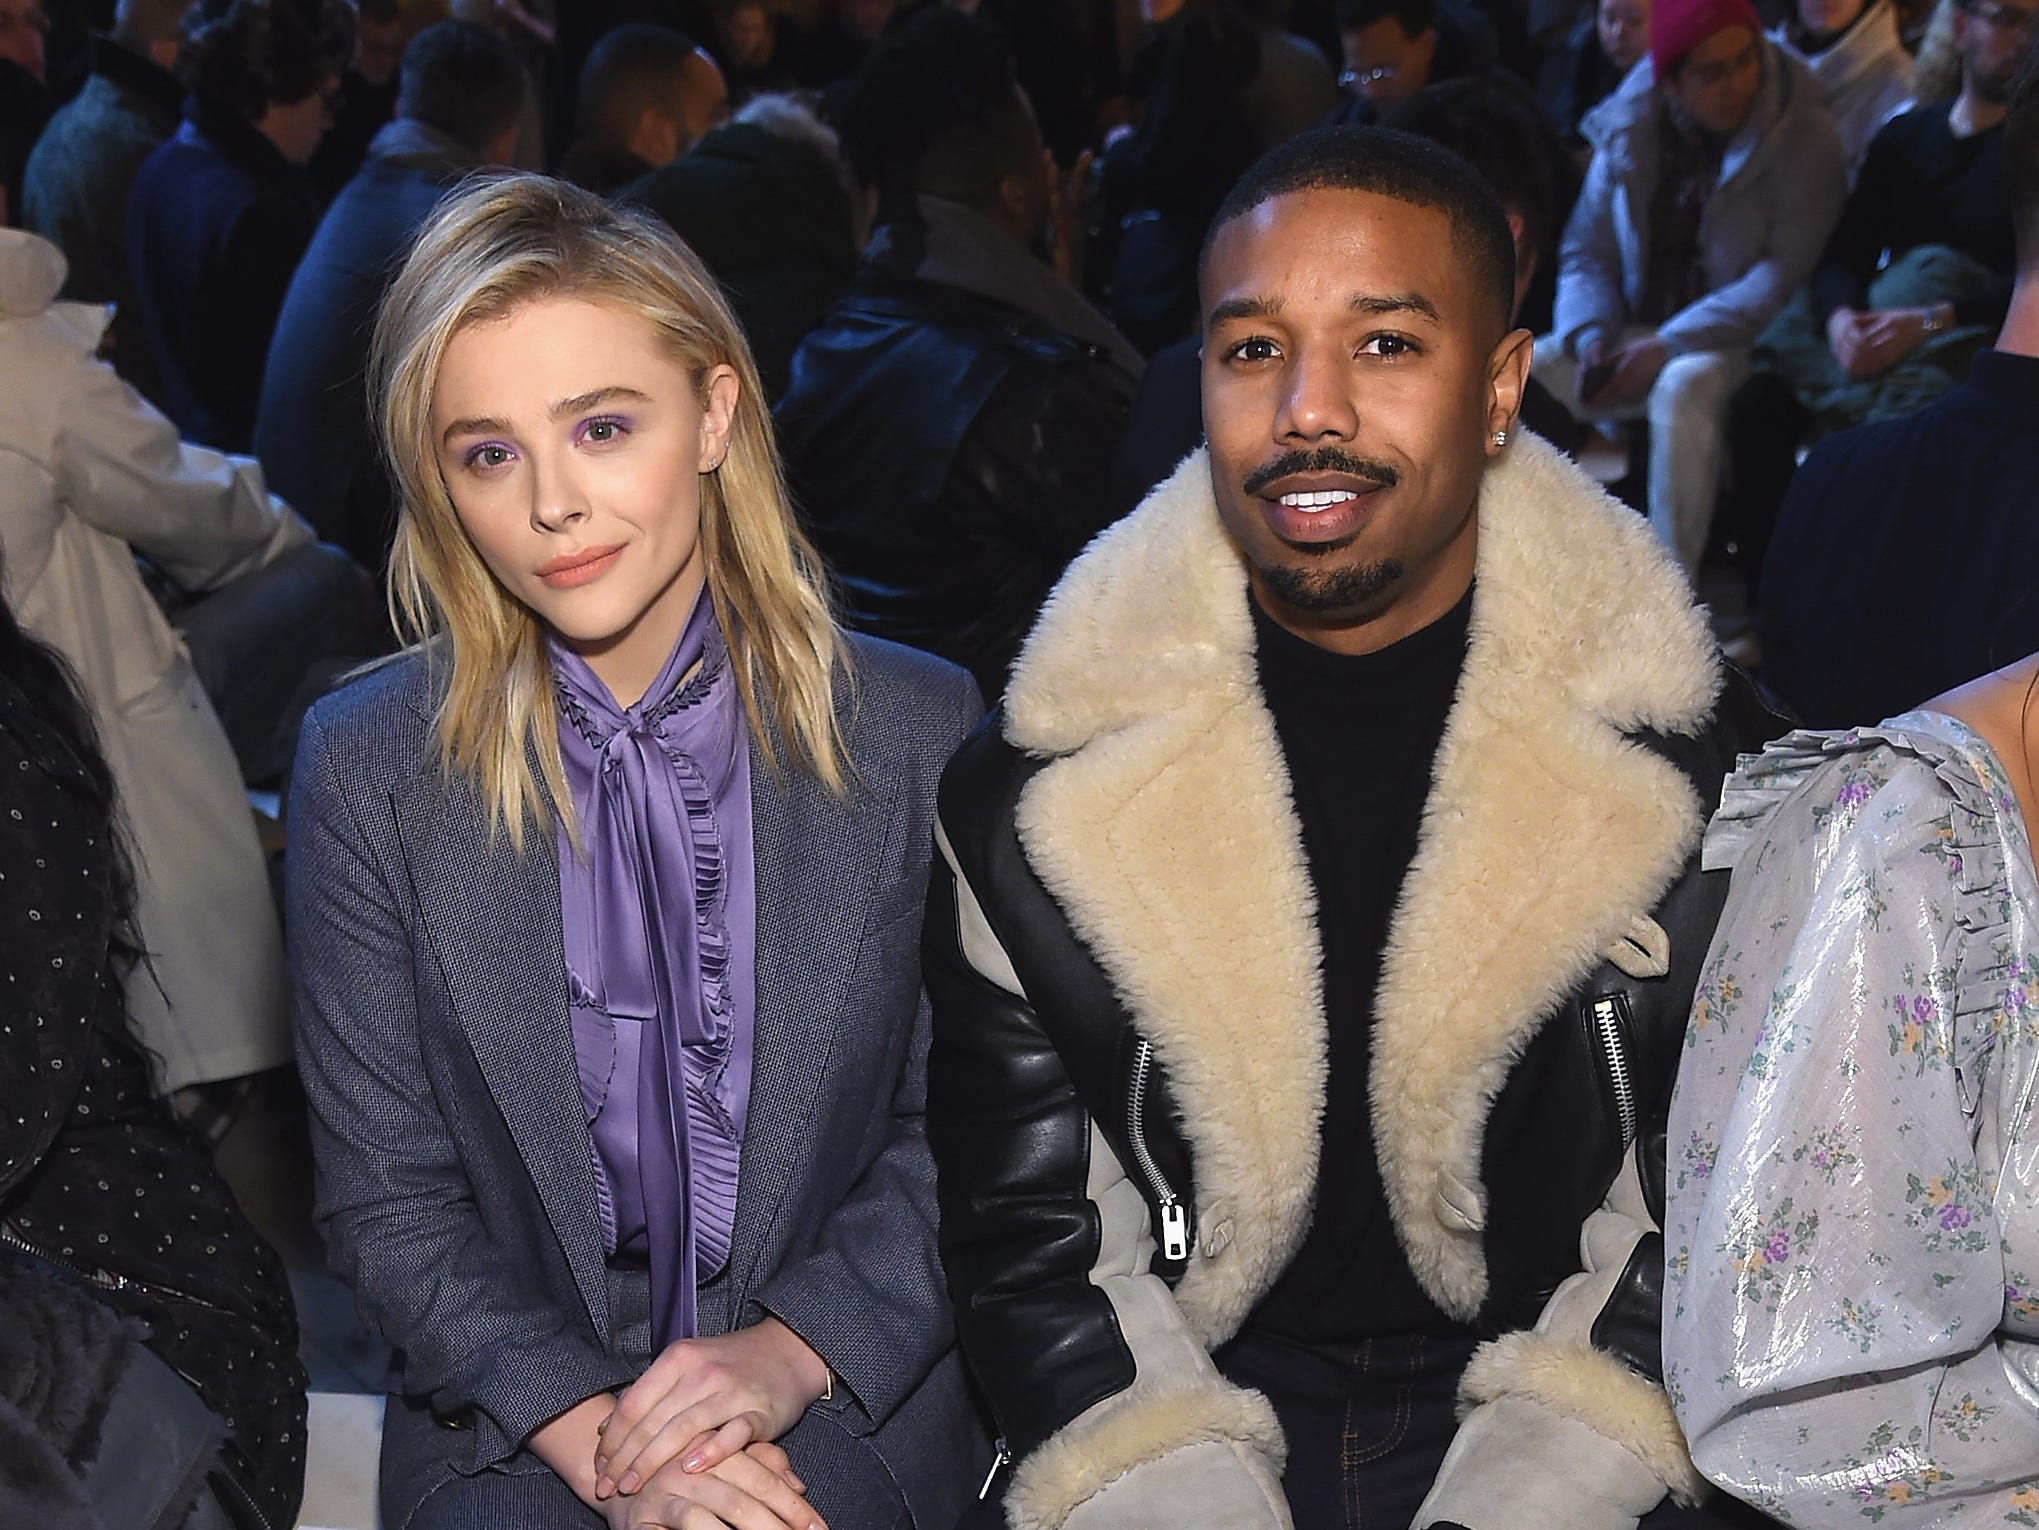 NEW YORK, NY - FEBRUARY 12: Chloe Grace Moretz (L) and Michael B. Jordan attend Coach 1941 fashion show at the NYSE on February 2019 during New York Fashion Week on February 12, 2019 in New York City.  (Photo by Jamie McCarthy/Getty Images) ORG XMIT: 775290960 ORIG FILE ID: 1124279982